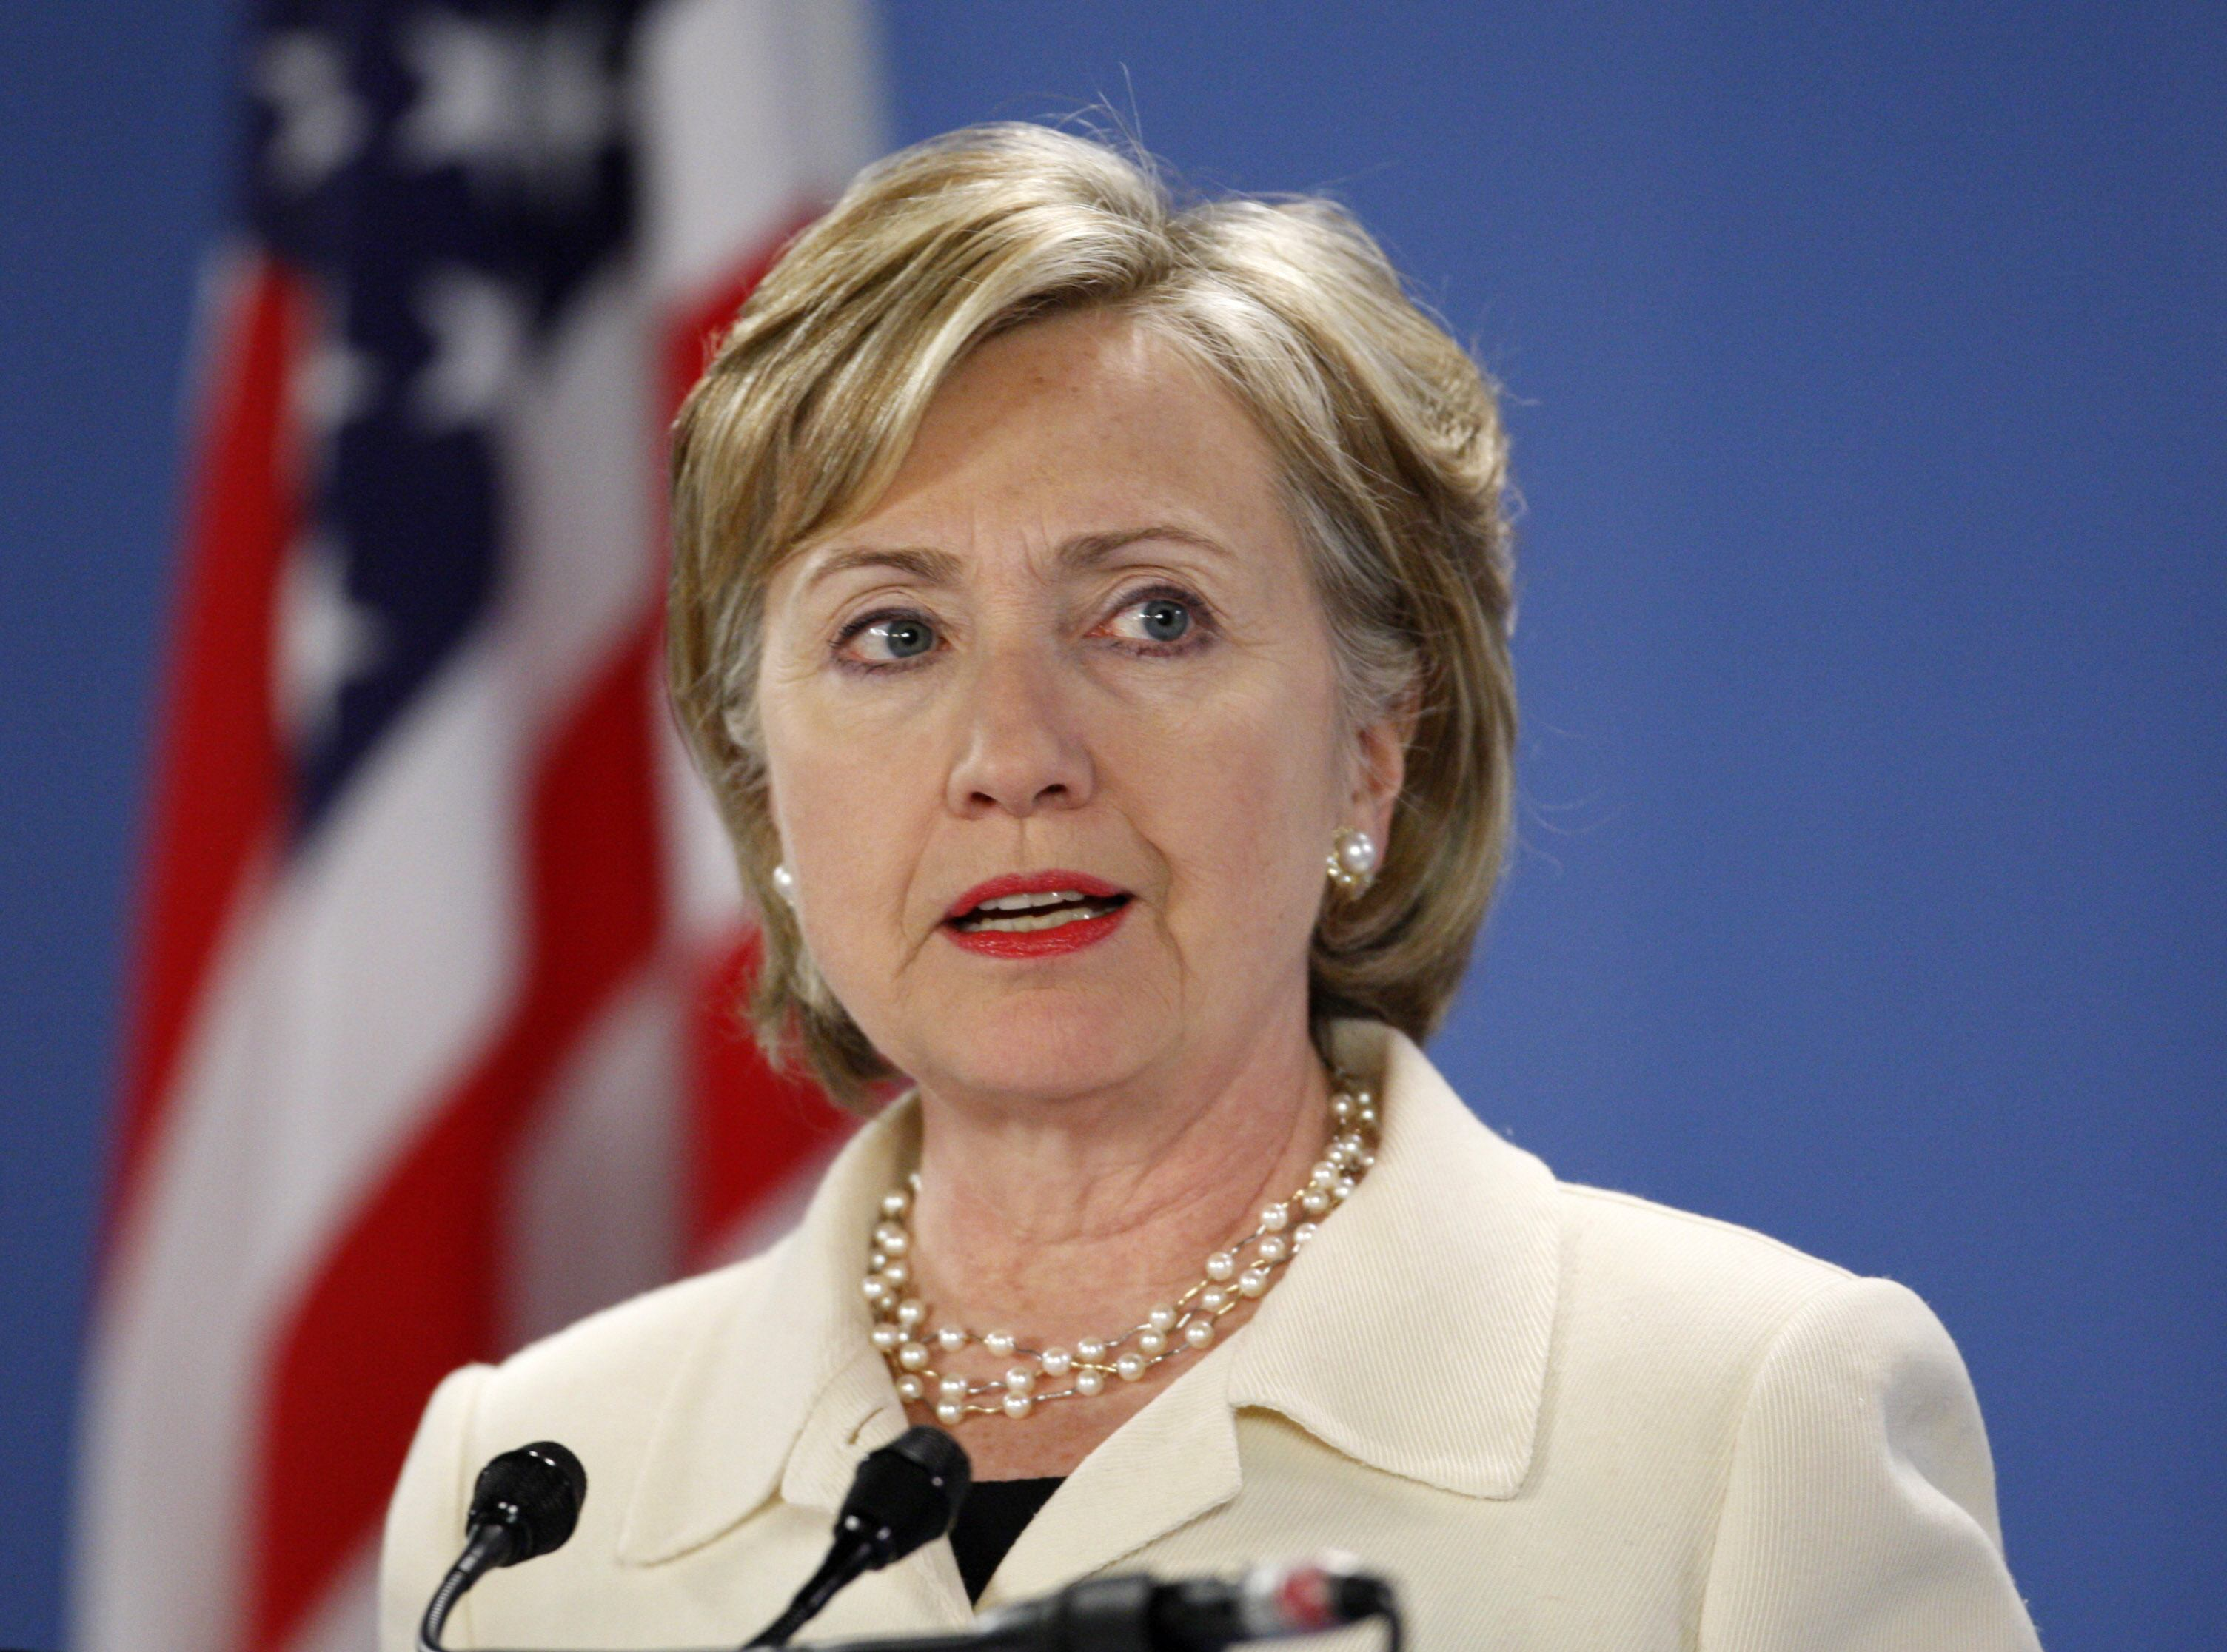 U.S. Secretary of State Clinton speaks during a news conference in the Hague